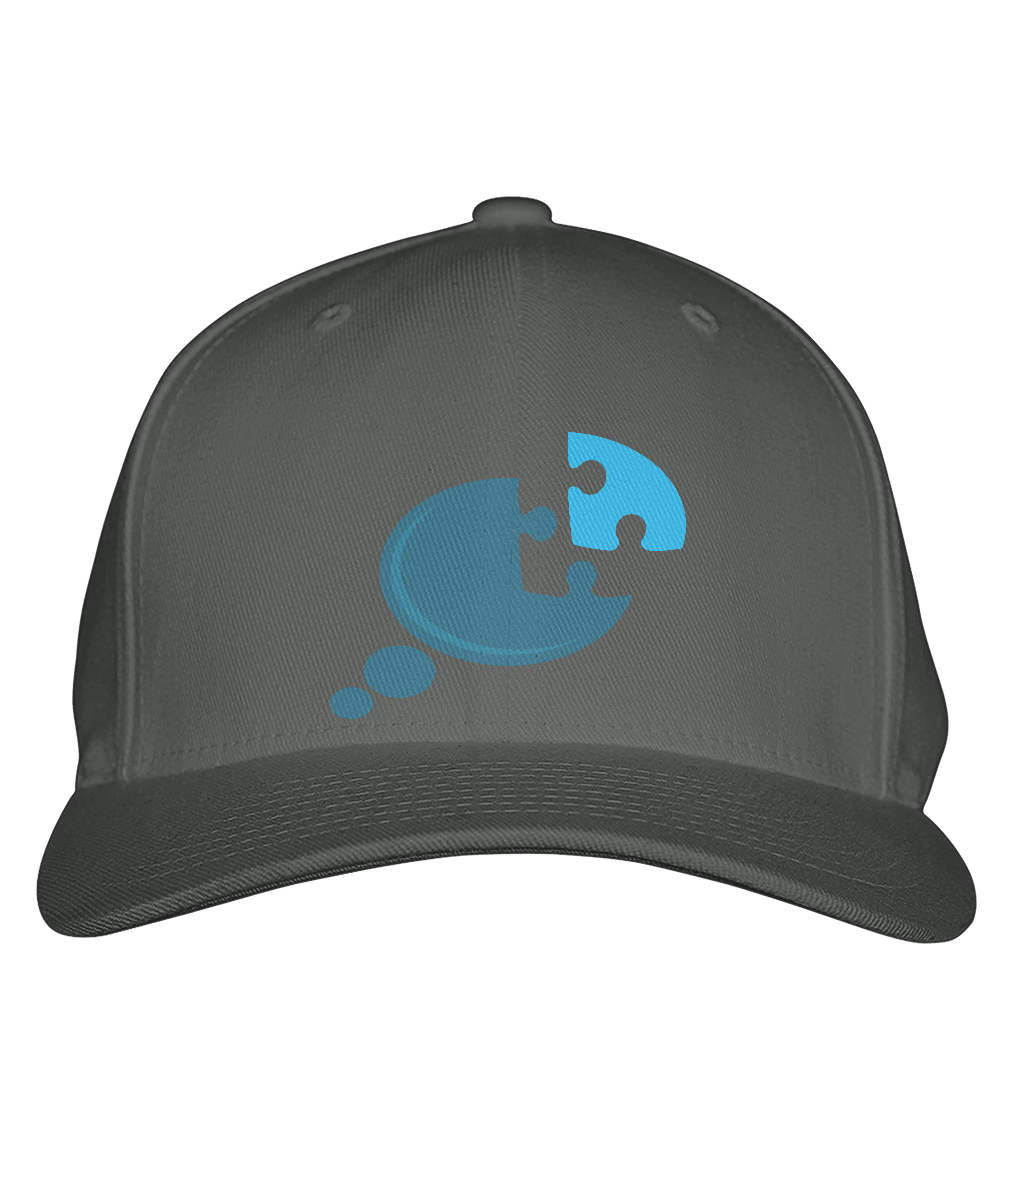 NFT Awareness Cap